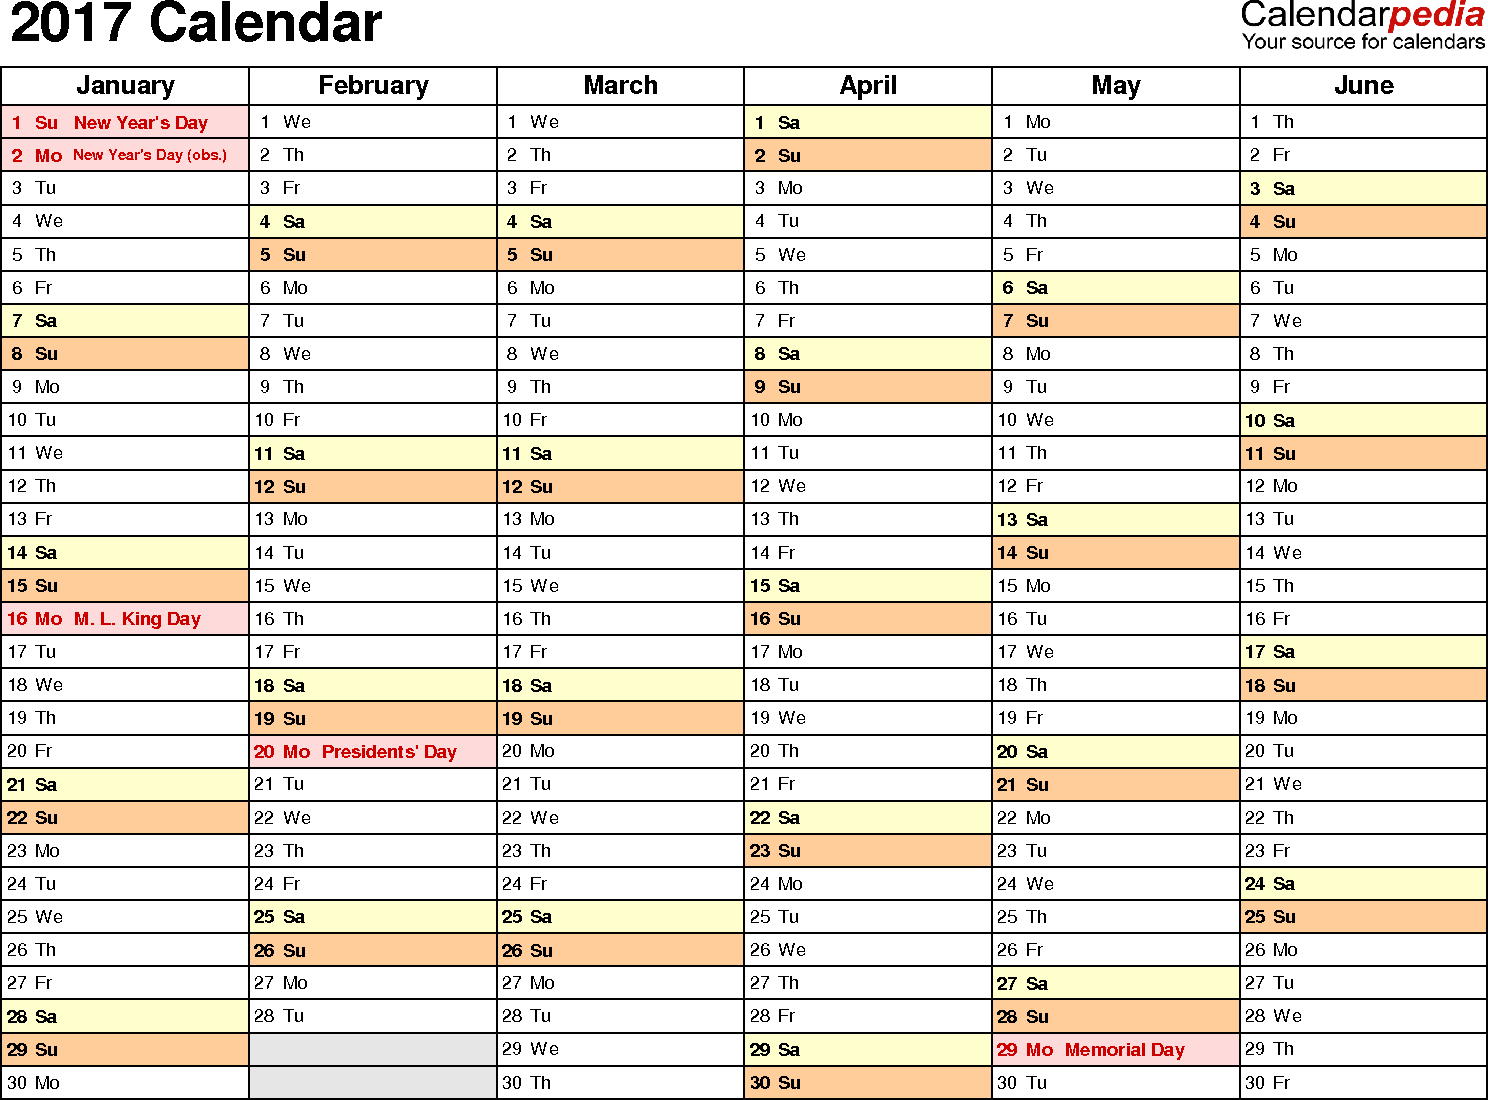 Ediblewildsus  Wonderful  Calendar  Download  Free Printable Excel Templates Xls With Great Template   Calendar For Excel Months Horizontally  Pages Landscape Orientation With Alluring How To Switch Cells In Excel Also Converting Word To Excel In Addition How To Unhide All Columns In Excel And How To Make Chart In Excel As Well As How To Freeze A Cell In Excel Additionally Calculate Weighted Average In Excel From Calendarpediacom With Ediblewildsus  Great  Calendar  Download  Free Printable Excel Templates Xls With Alluring Template   Calendar For Excel Months Horizontally  Pages Landscape Orientation And Wonderful How To Switch Cells In Excel Also Converting Word To Excel In Addition How To Unhide All Columns In Excel From Calendarpediacom